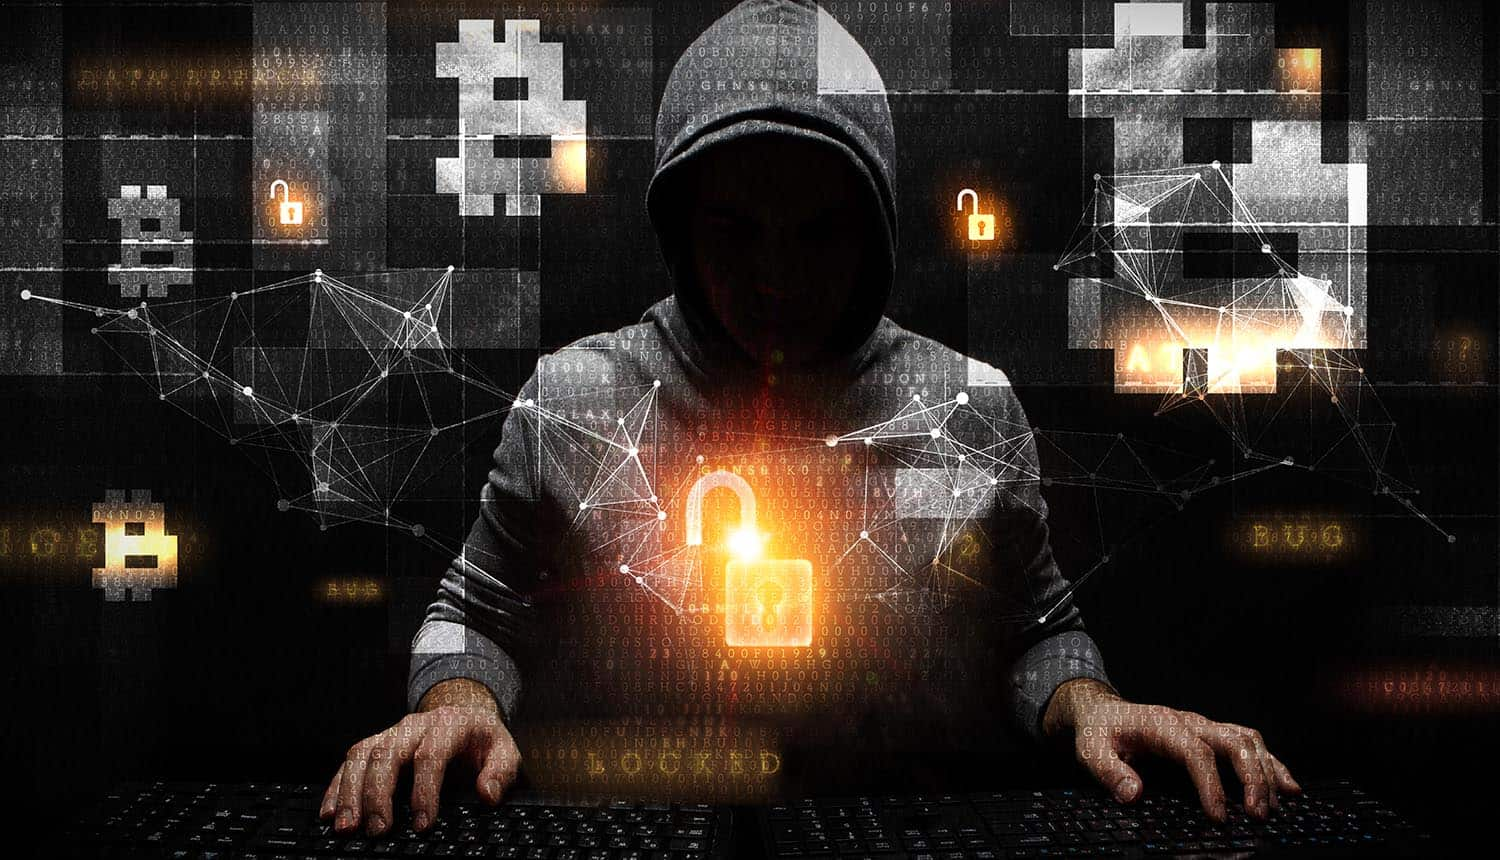 Hacker using DDoS extortion as Bitcoin price surges